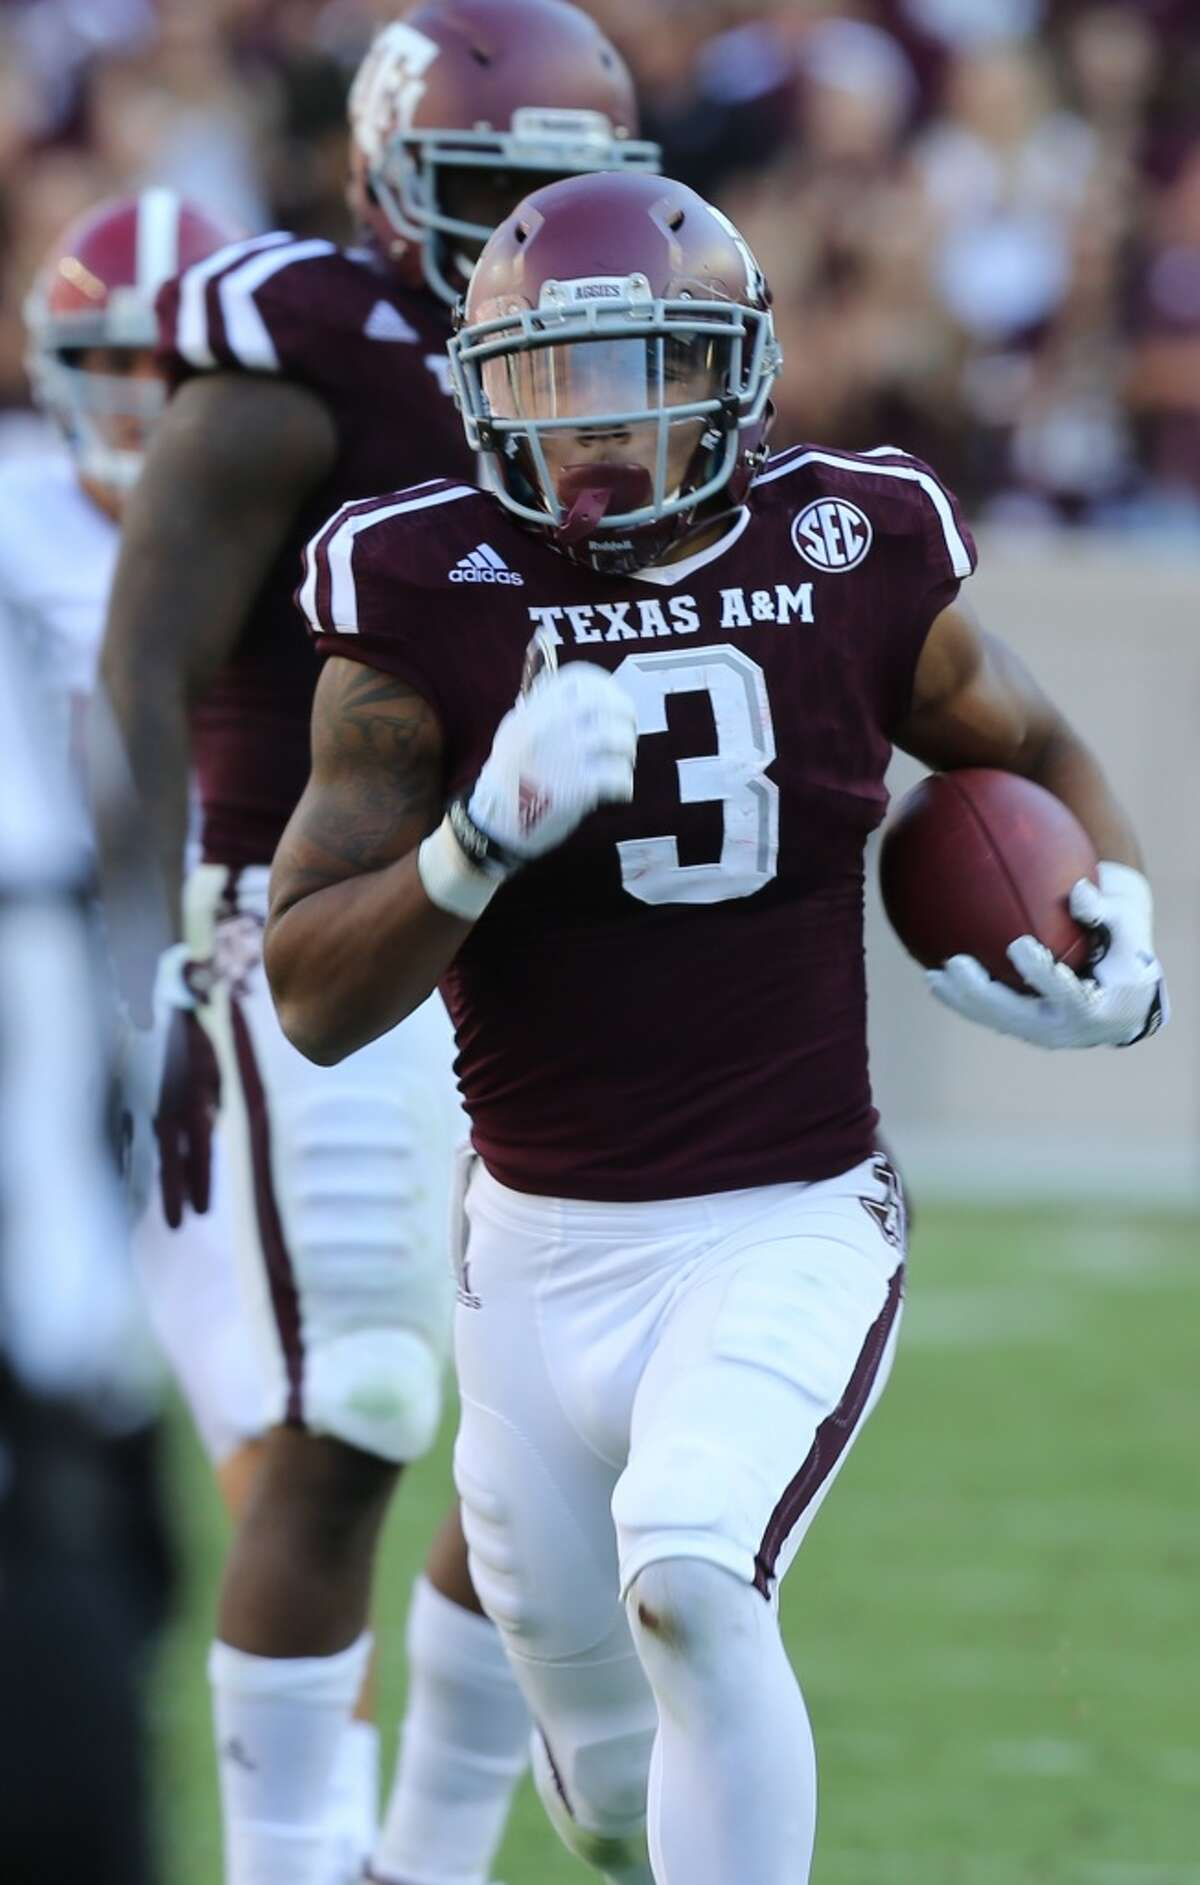 RECEIVERS/TIGHT ENDS A&M leading receiver Christian Kirk (3) has nearly twice as many catches (70) as Louisville's top receiver (Jamari Staples with 36). The Cardinals do spread around the ball more, and have nine receivers with double-digit catches, compared to six for A&M. Edge: A&M